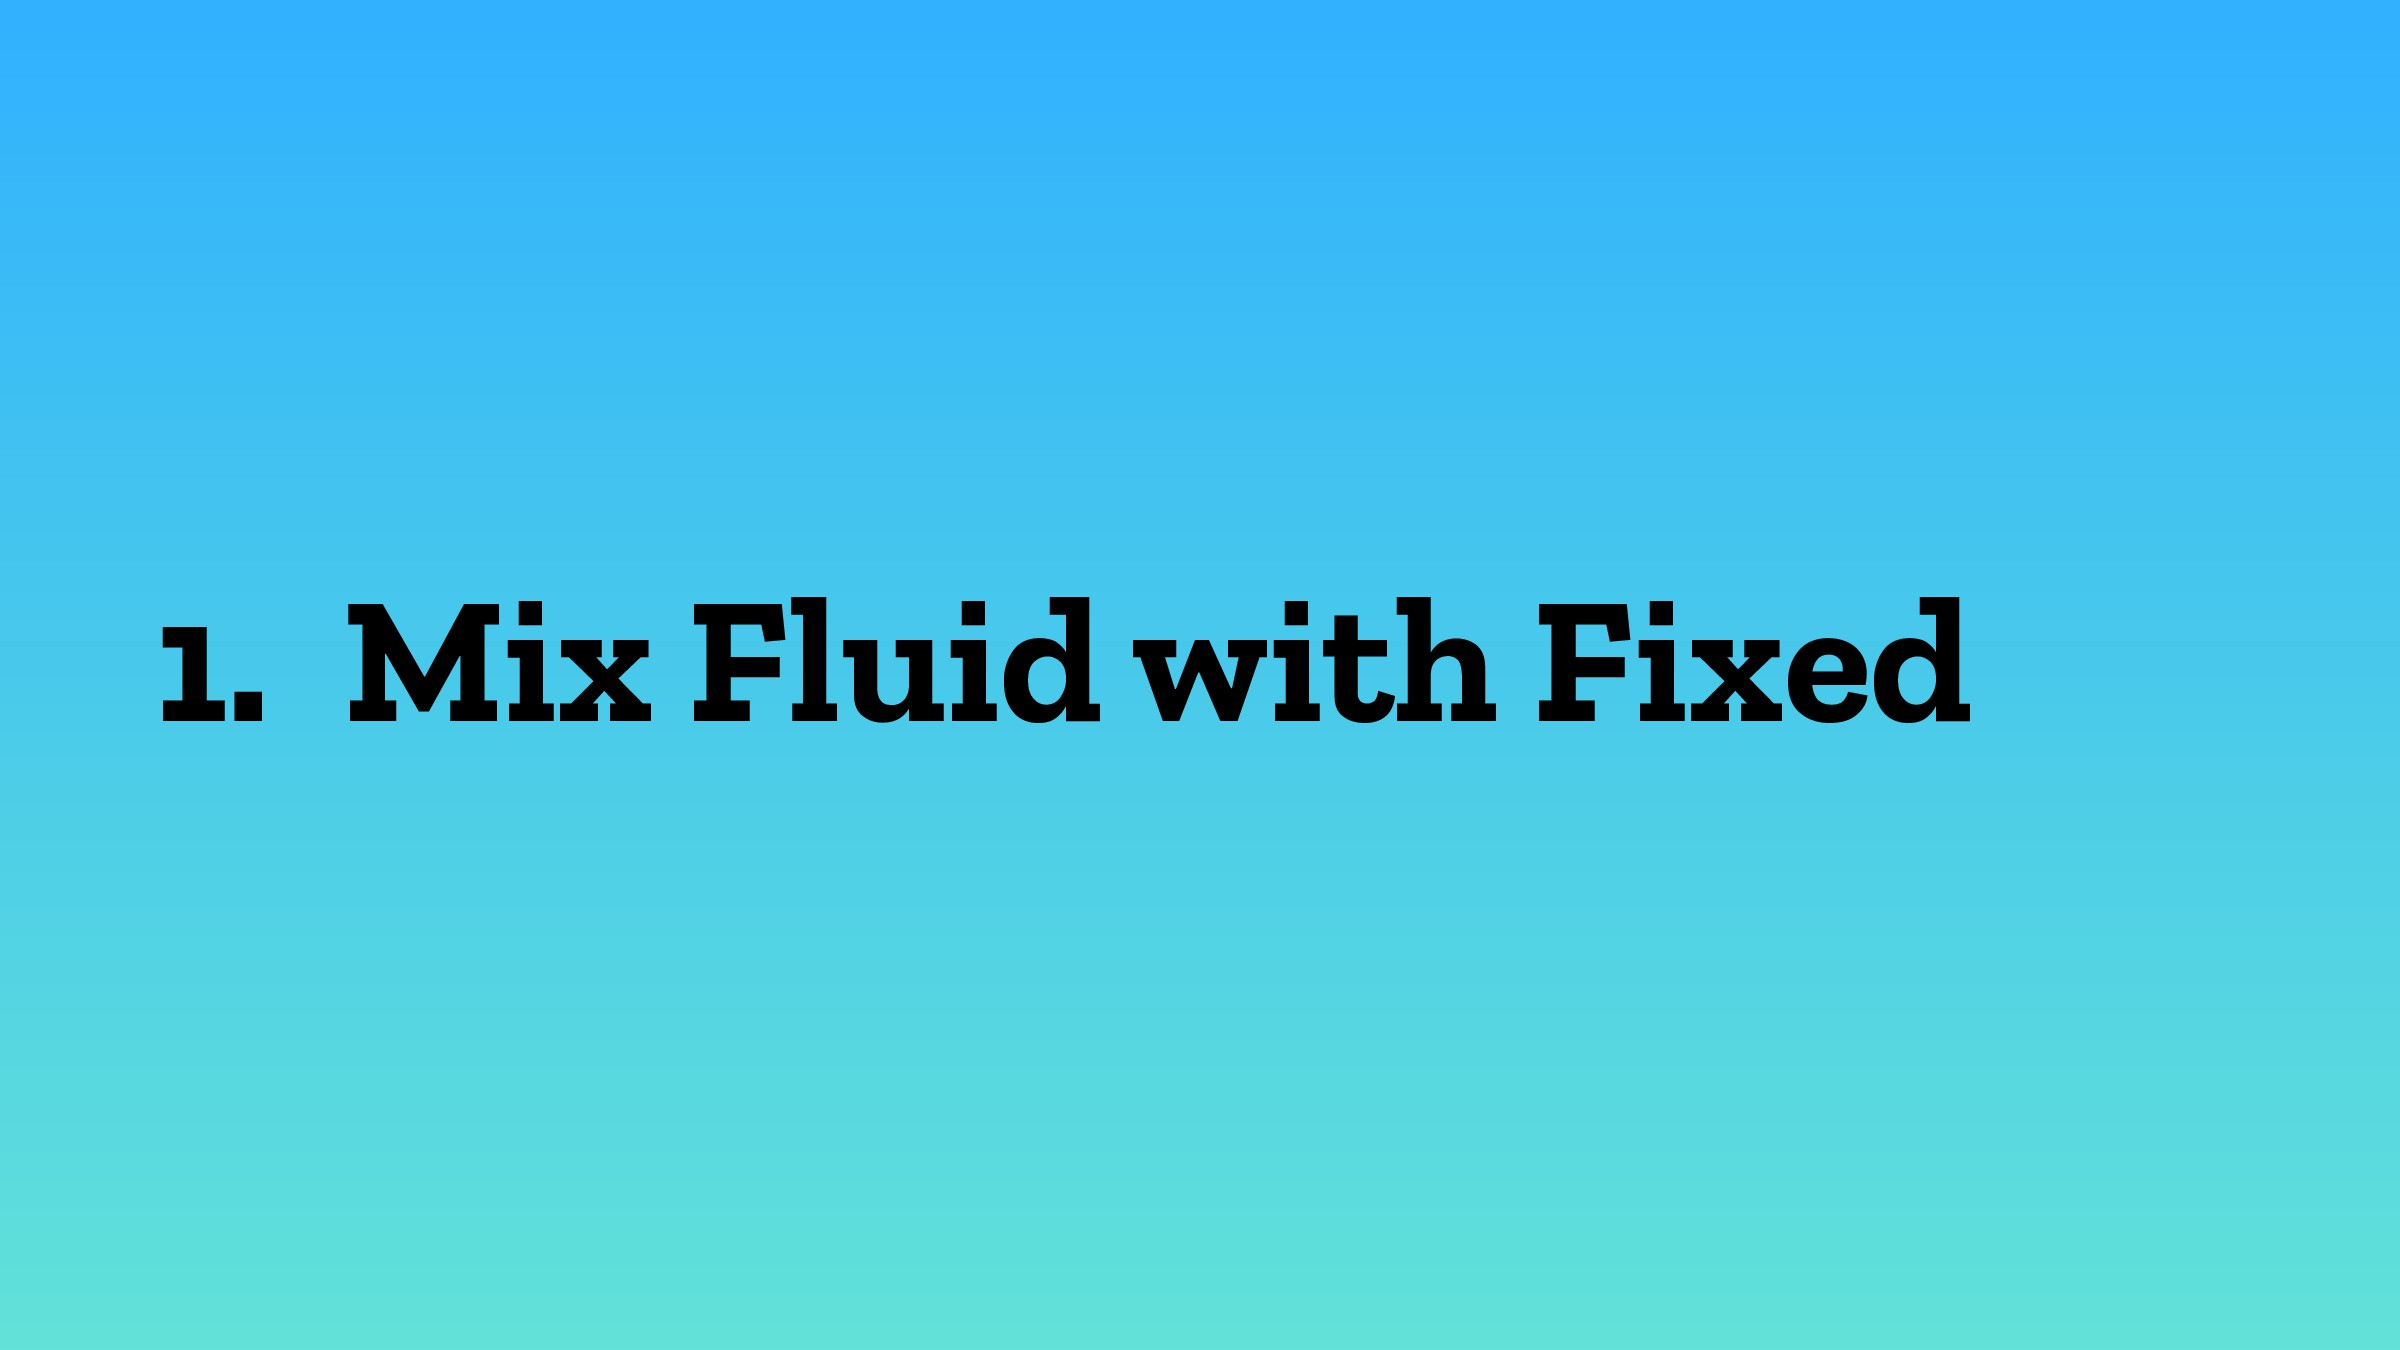 1. Mix Fluid with Fixed